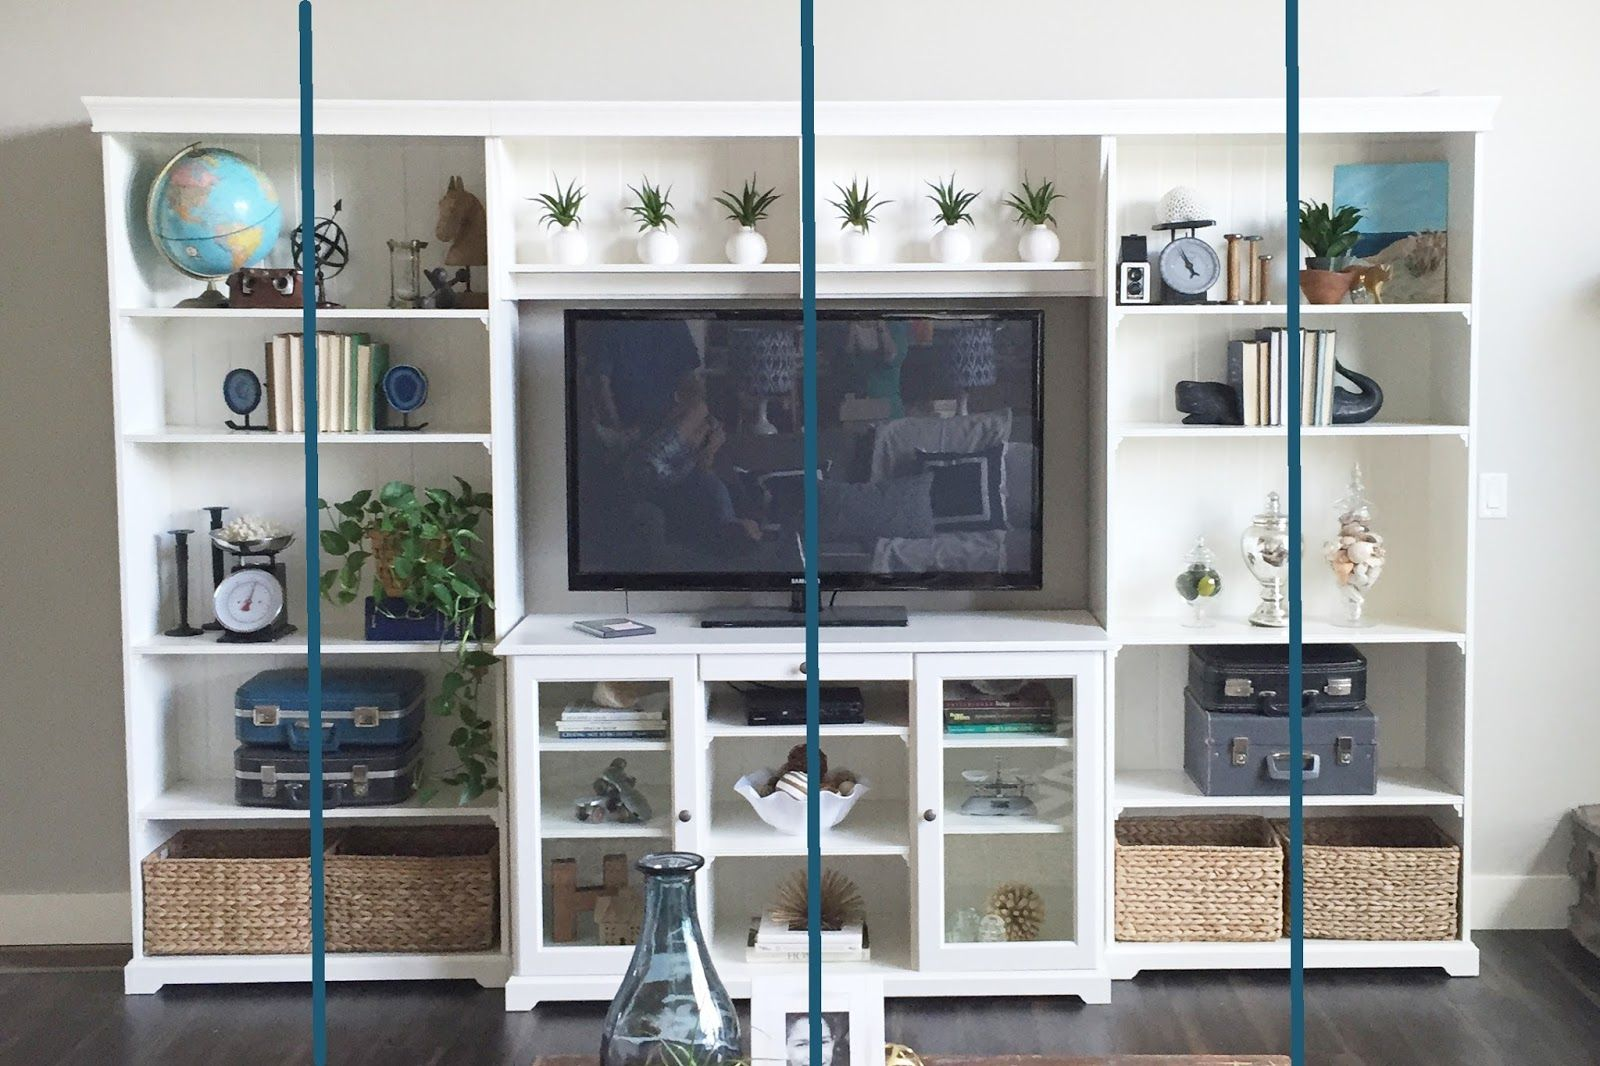 Credenza Liatorp Ikea : How to style the ikea liatorp bookshelves! hubby projects